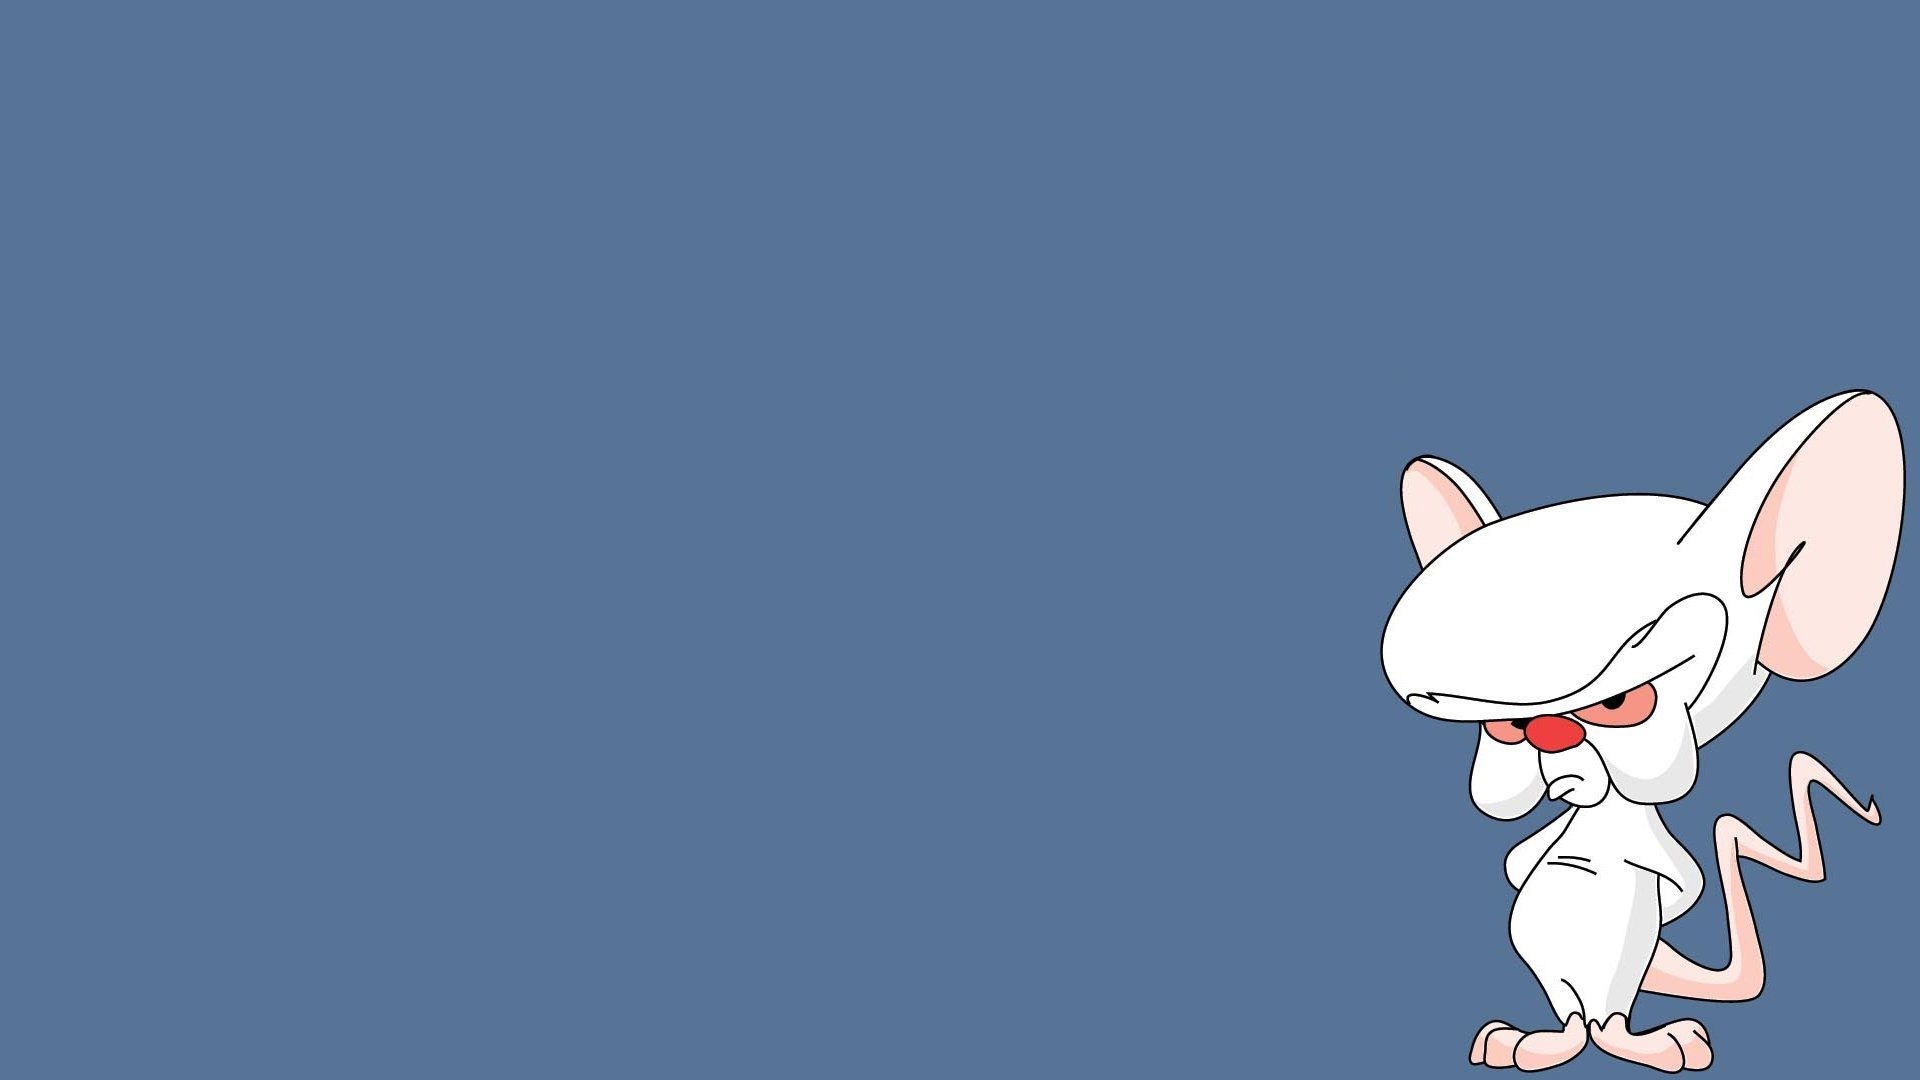 Free Pinky And The Brain high quality wallpaper ID:48564 for hd 1080p computer